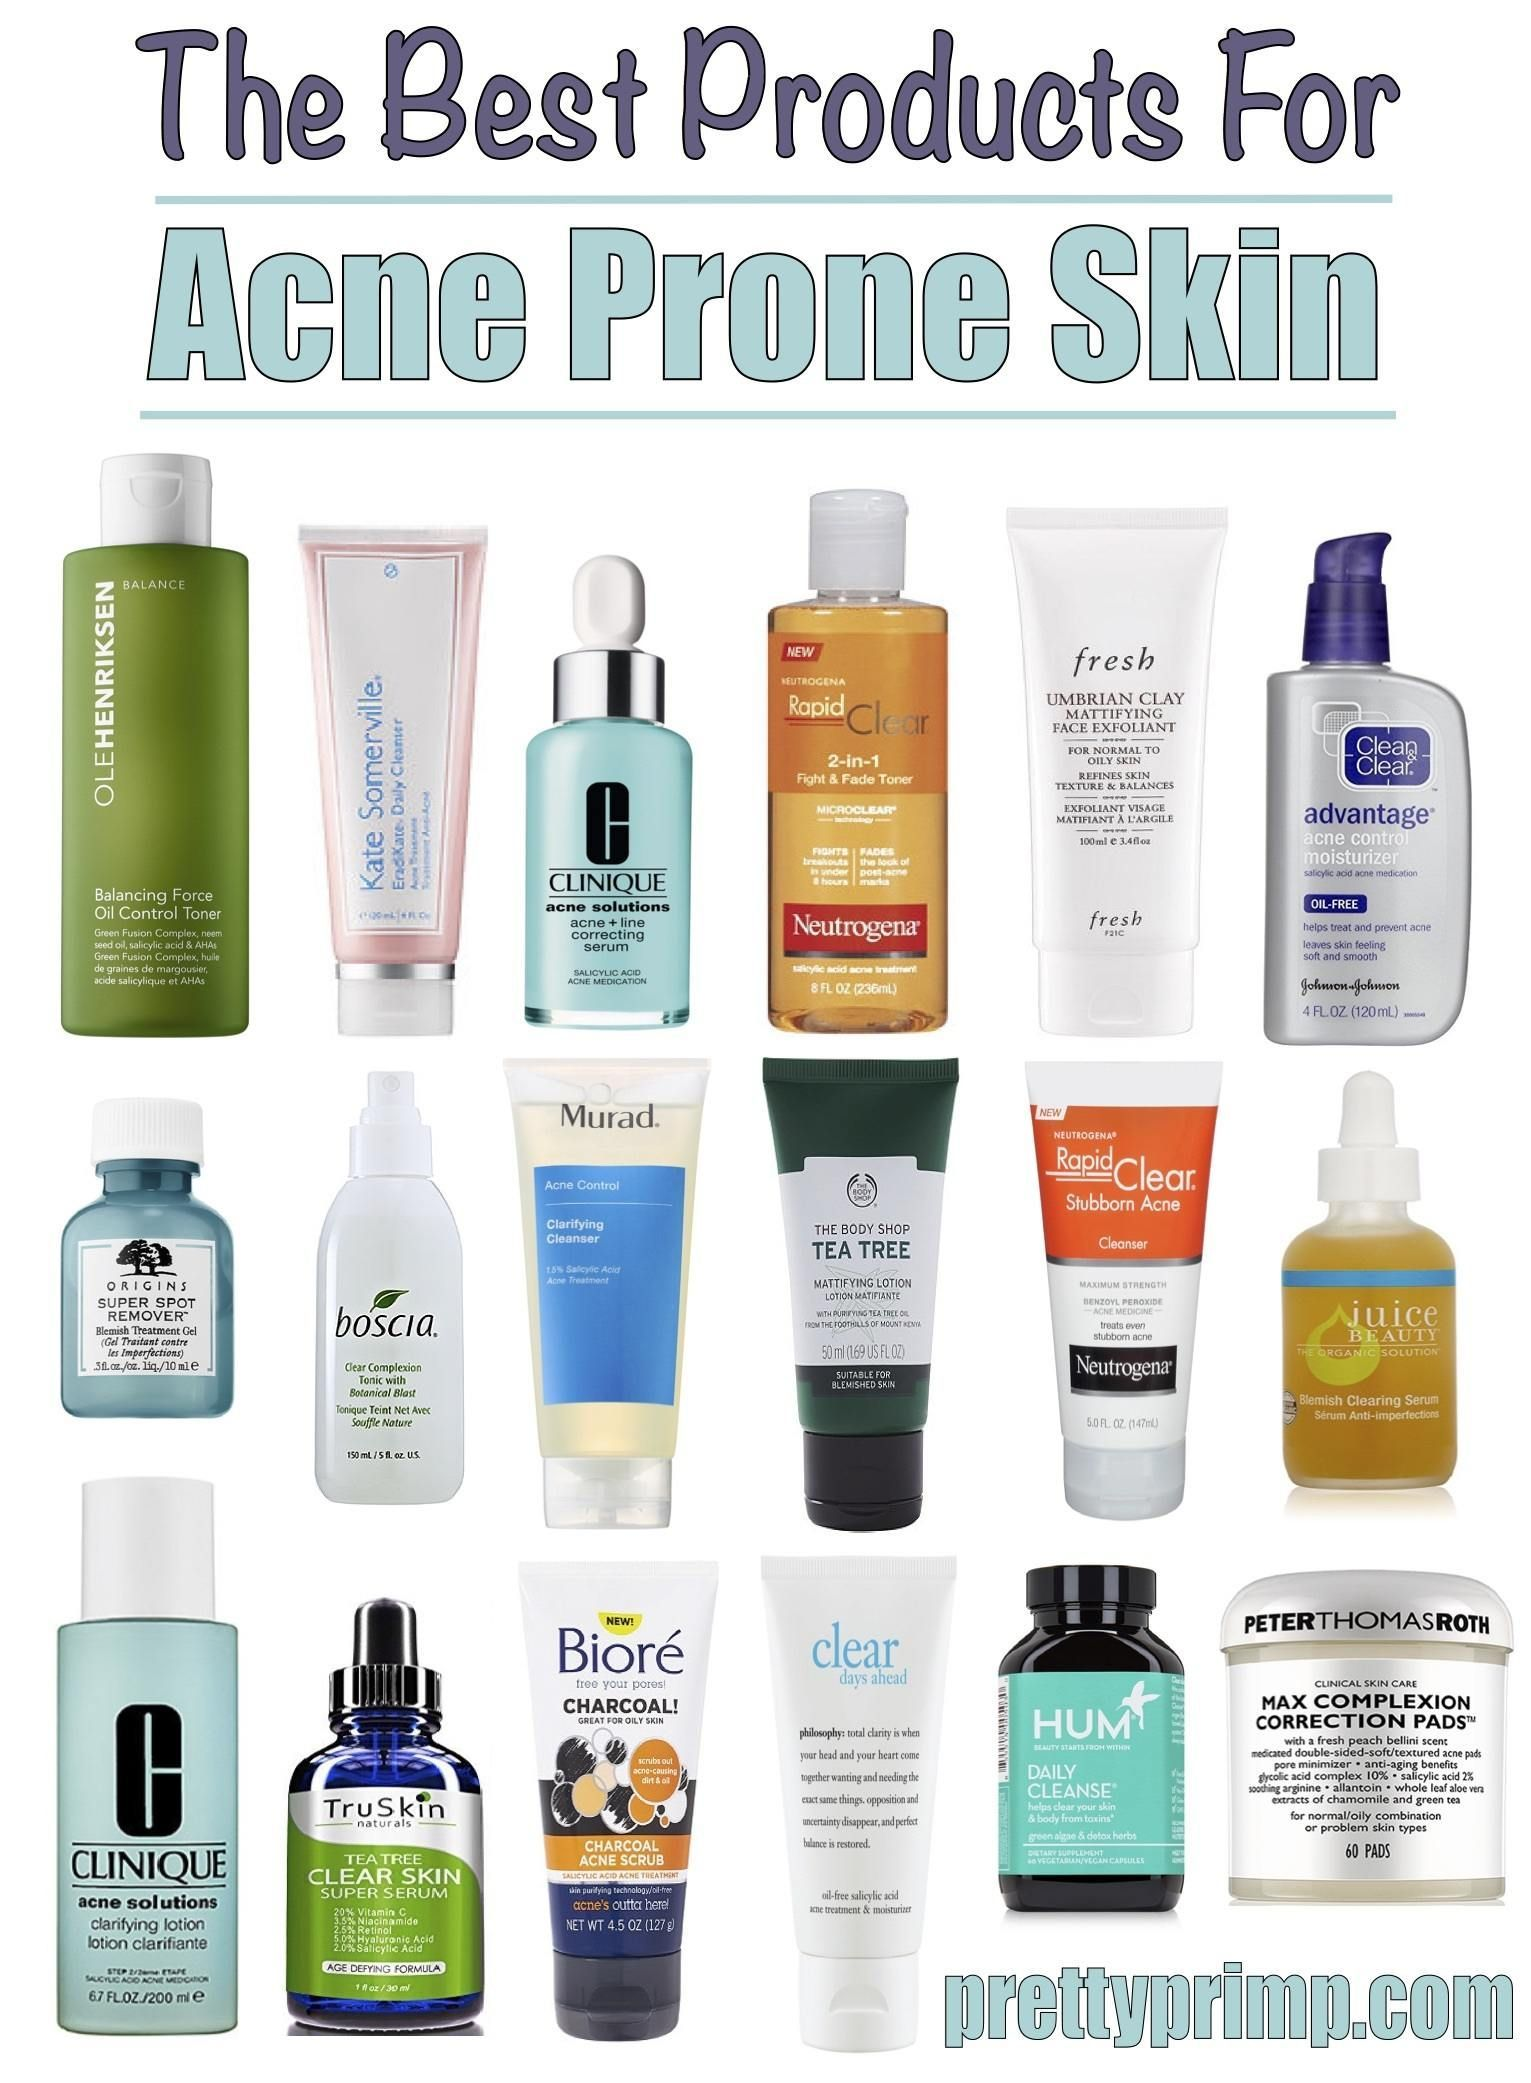 Acne Banish Best Skin Care Products Skincare Routine Drugstore Beauty Oily Pimples Products Prone Skin Ski In 2020 Best Acne Products Acne Solutions Acne Skin